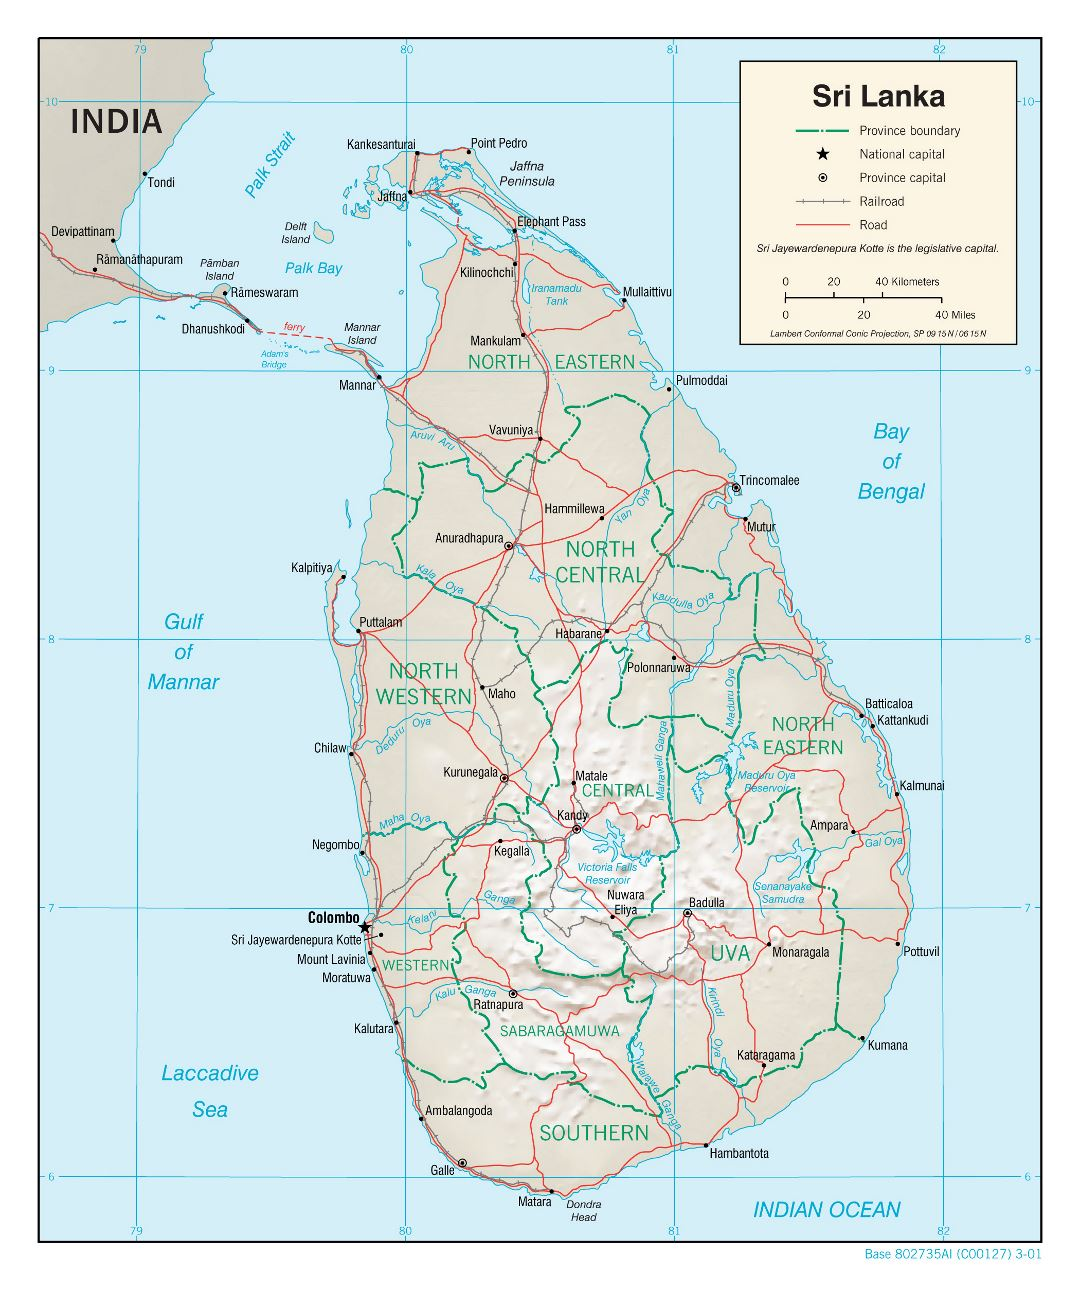 Large political and administrative map of Sri Lanka with relief, roads, railroads and major cities - 2001